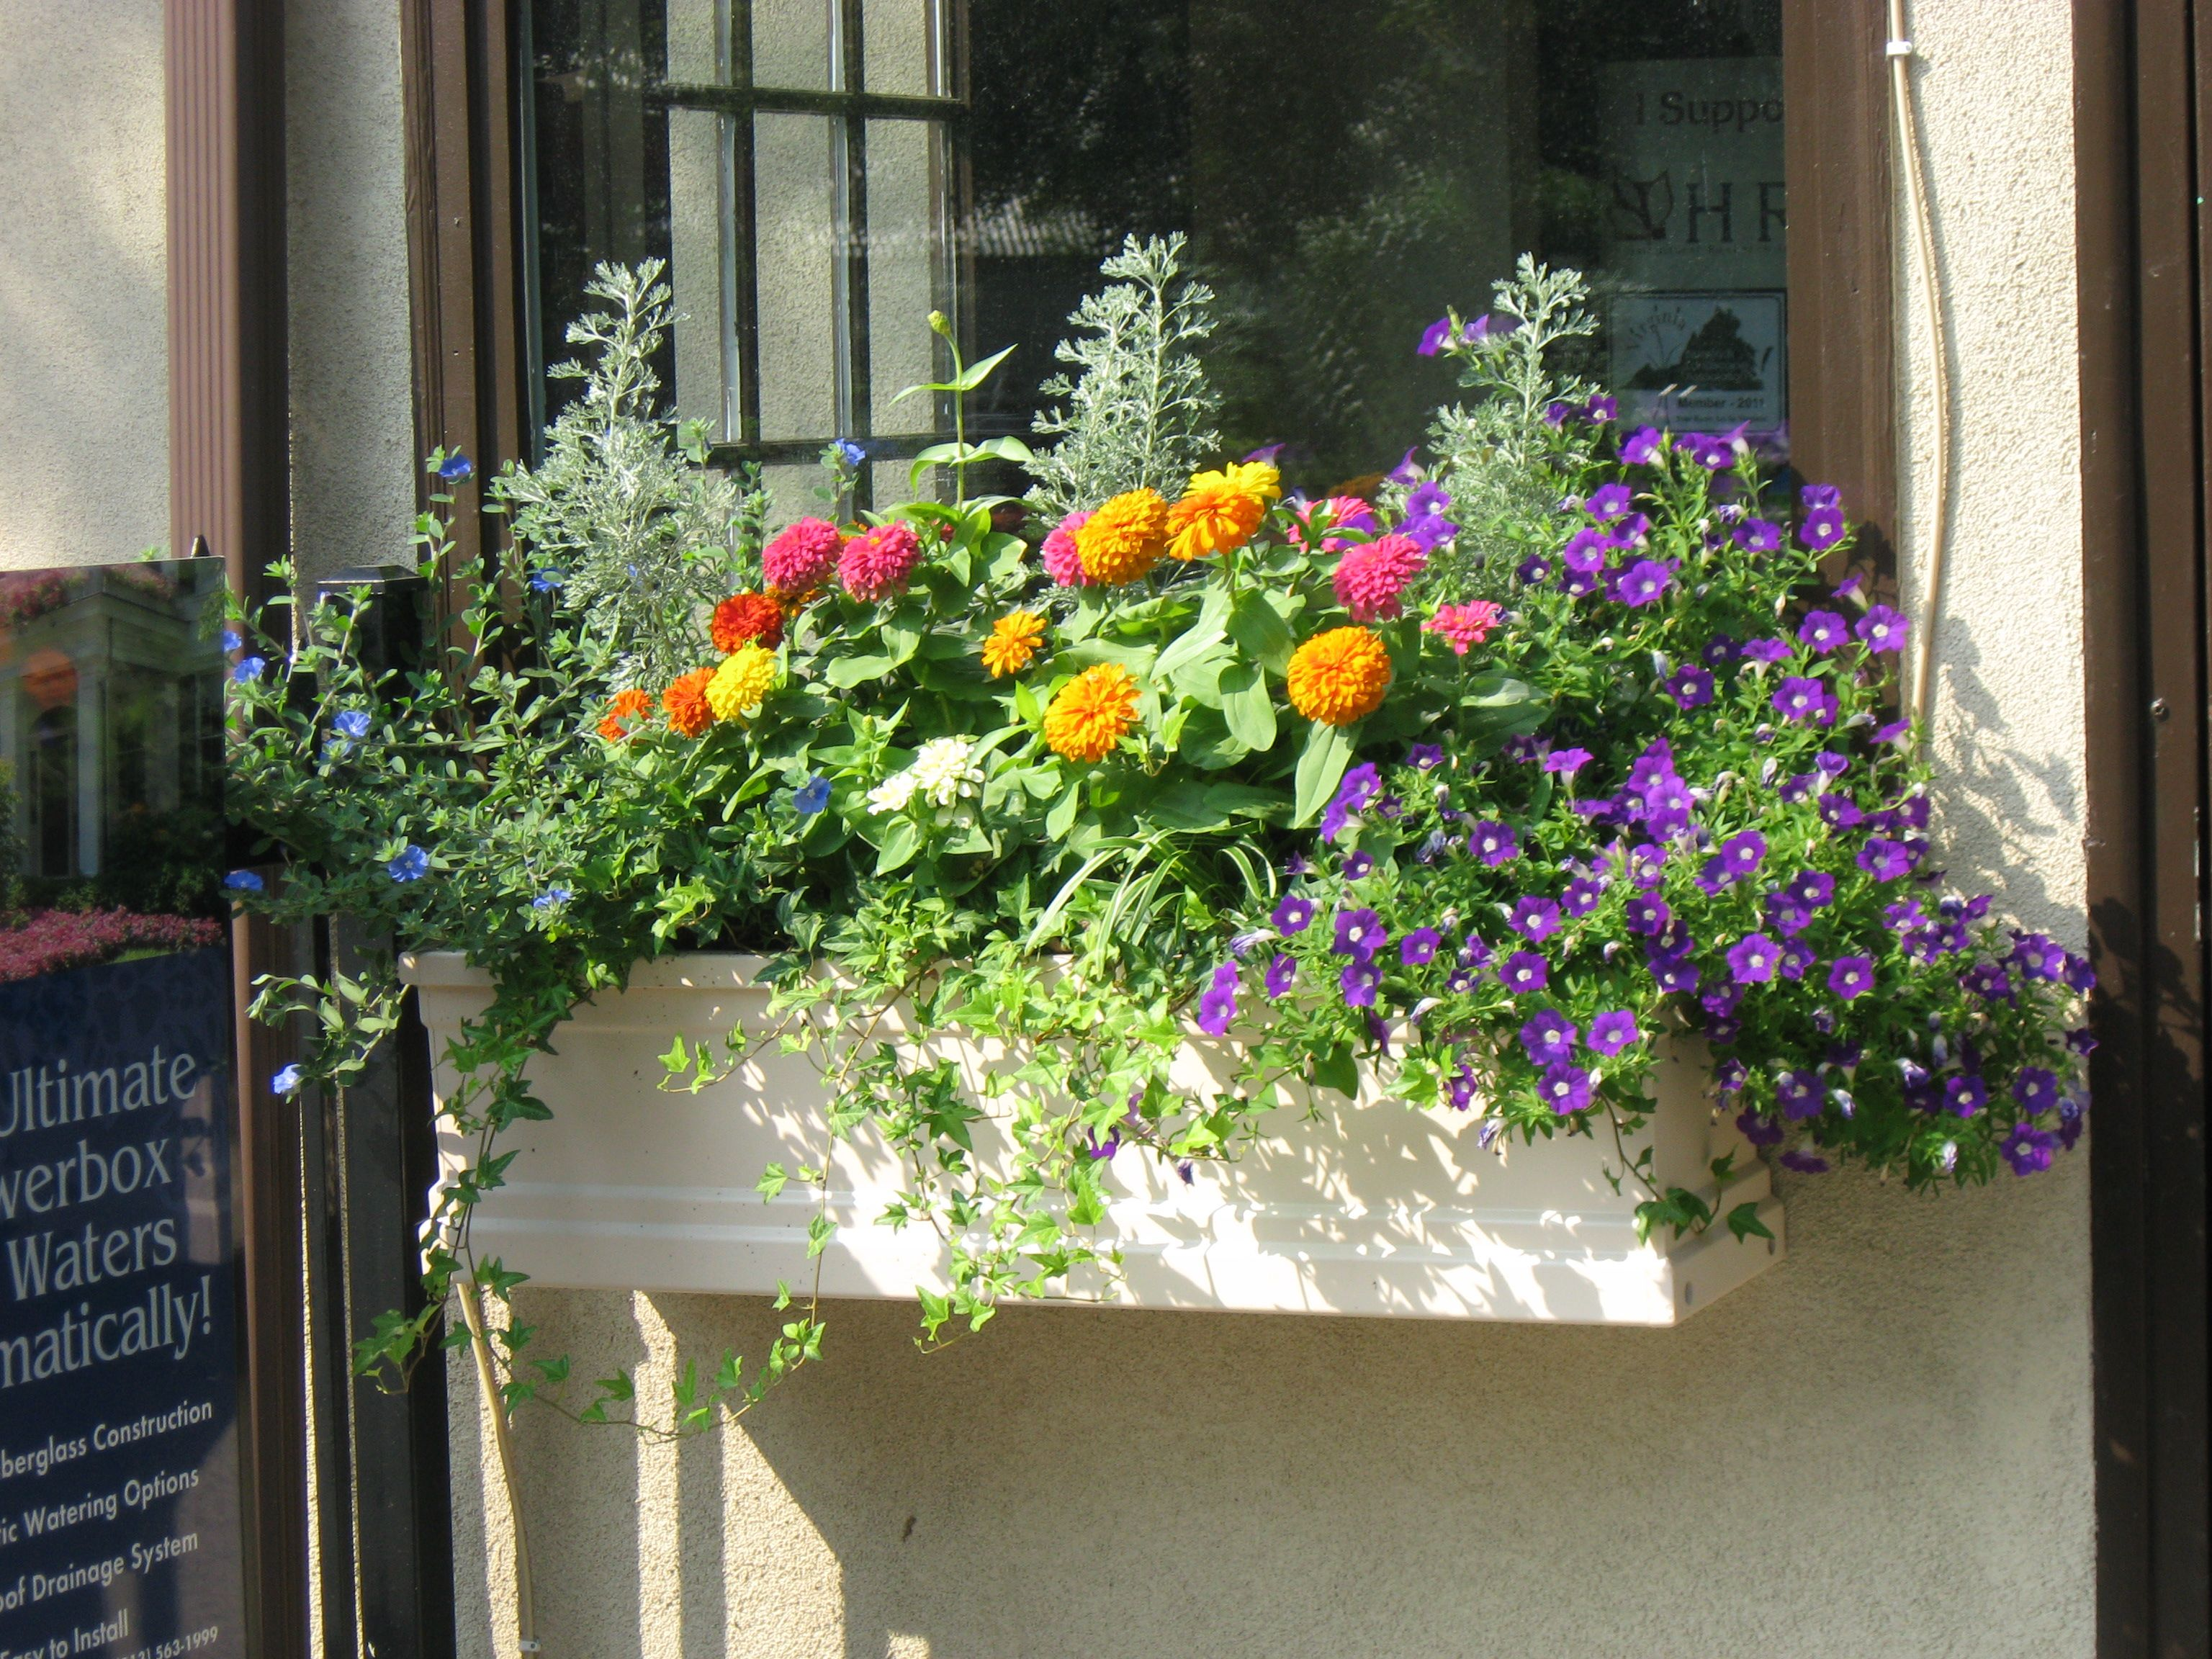 1594 best window boxes images on pinterest | windows, facts and flower